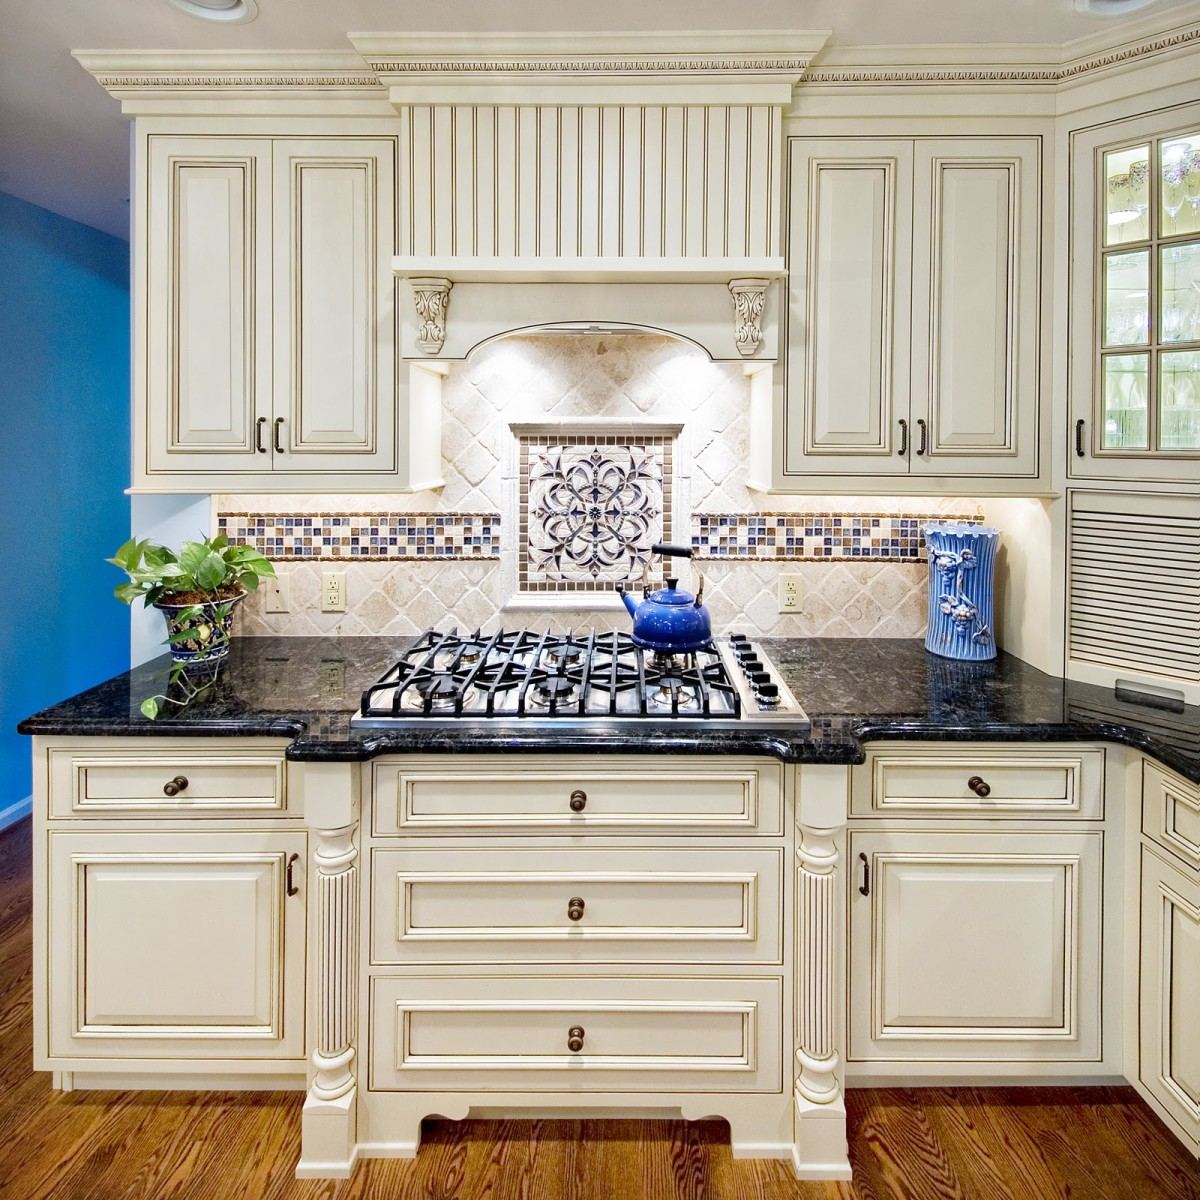 Redecorating Kitchen 6 Design Ideas For Your Range Backsplash